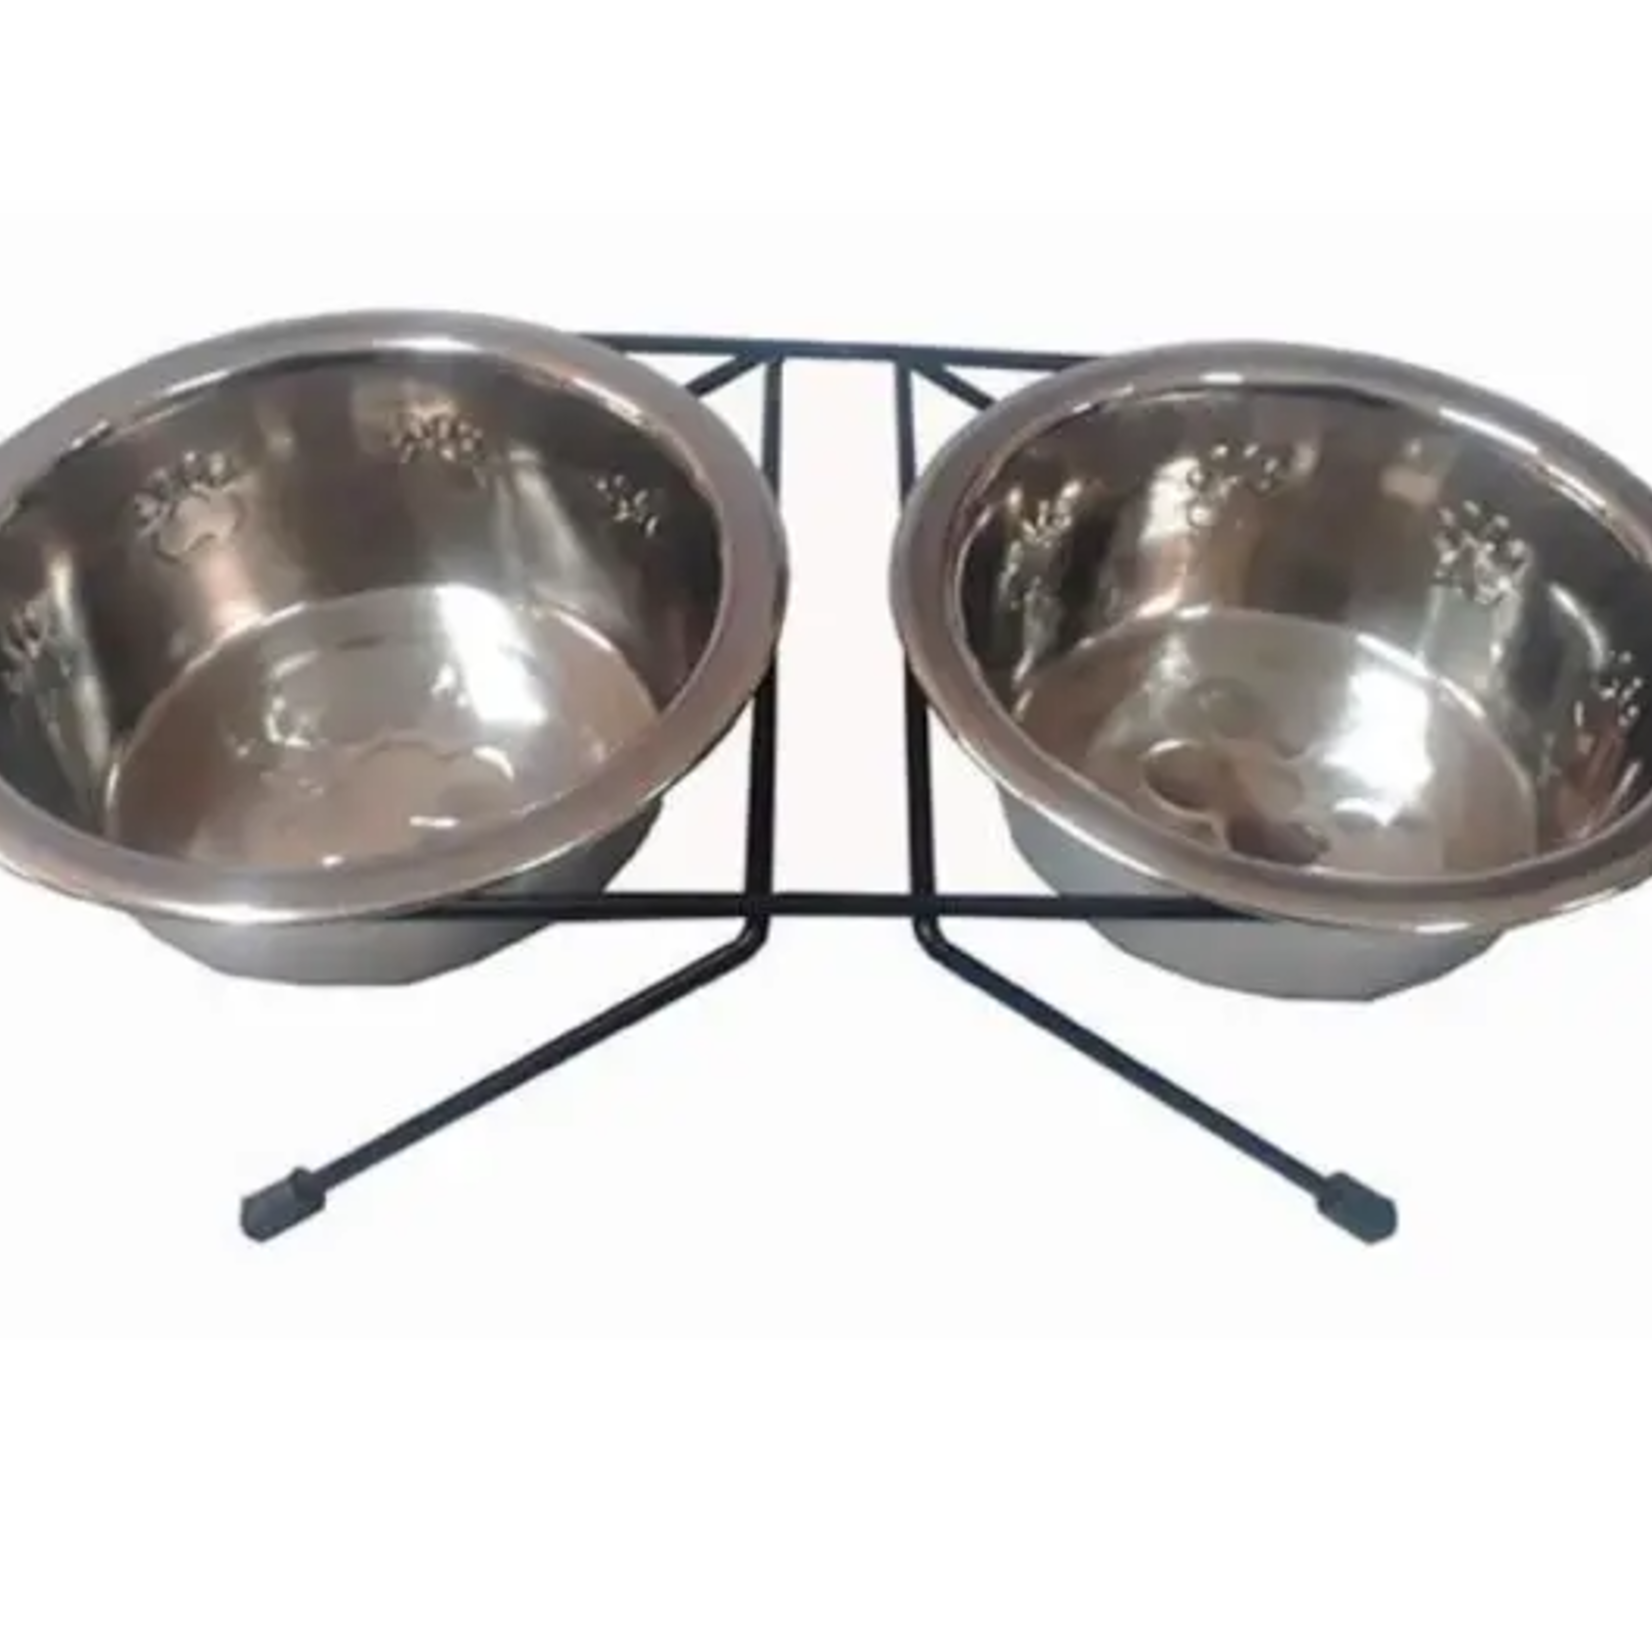 Hunter Brand Double stainless steel bowl